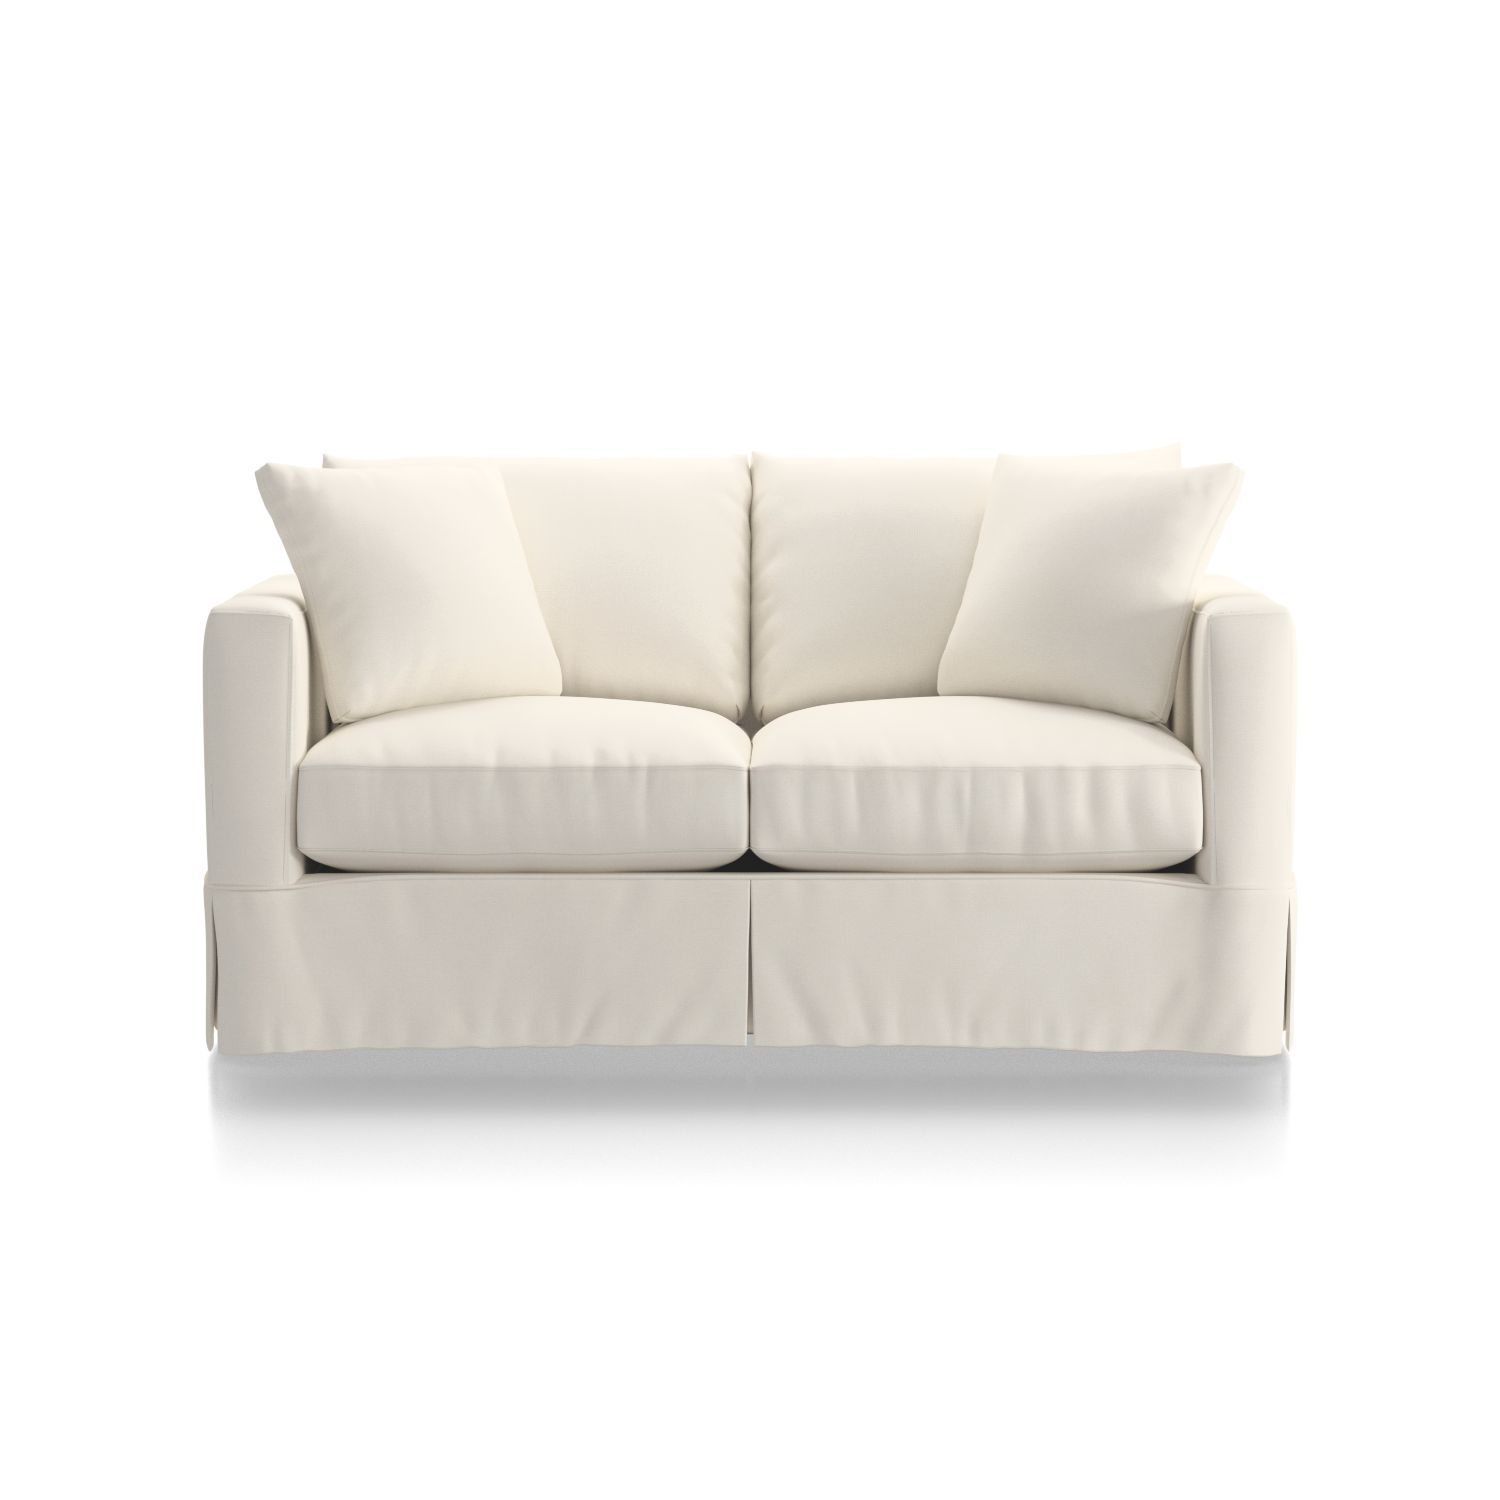 Willow Apartment Sofa Sofa Couch Bed Sofa Full Sleeper Sofa